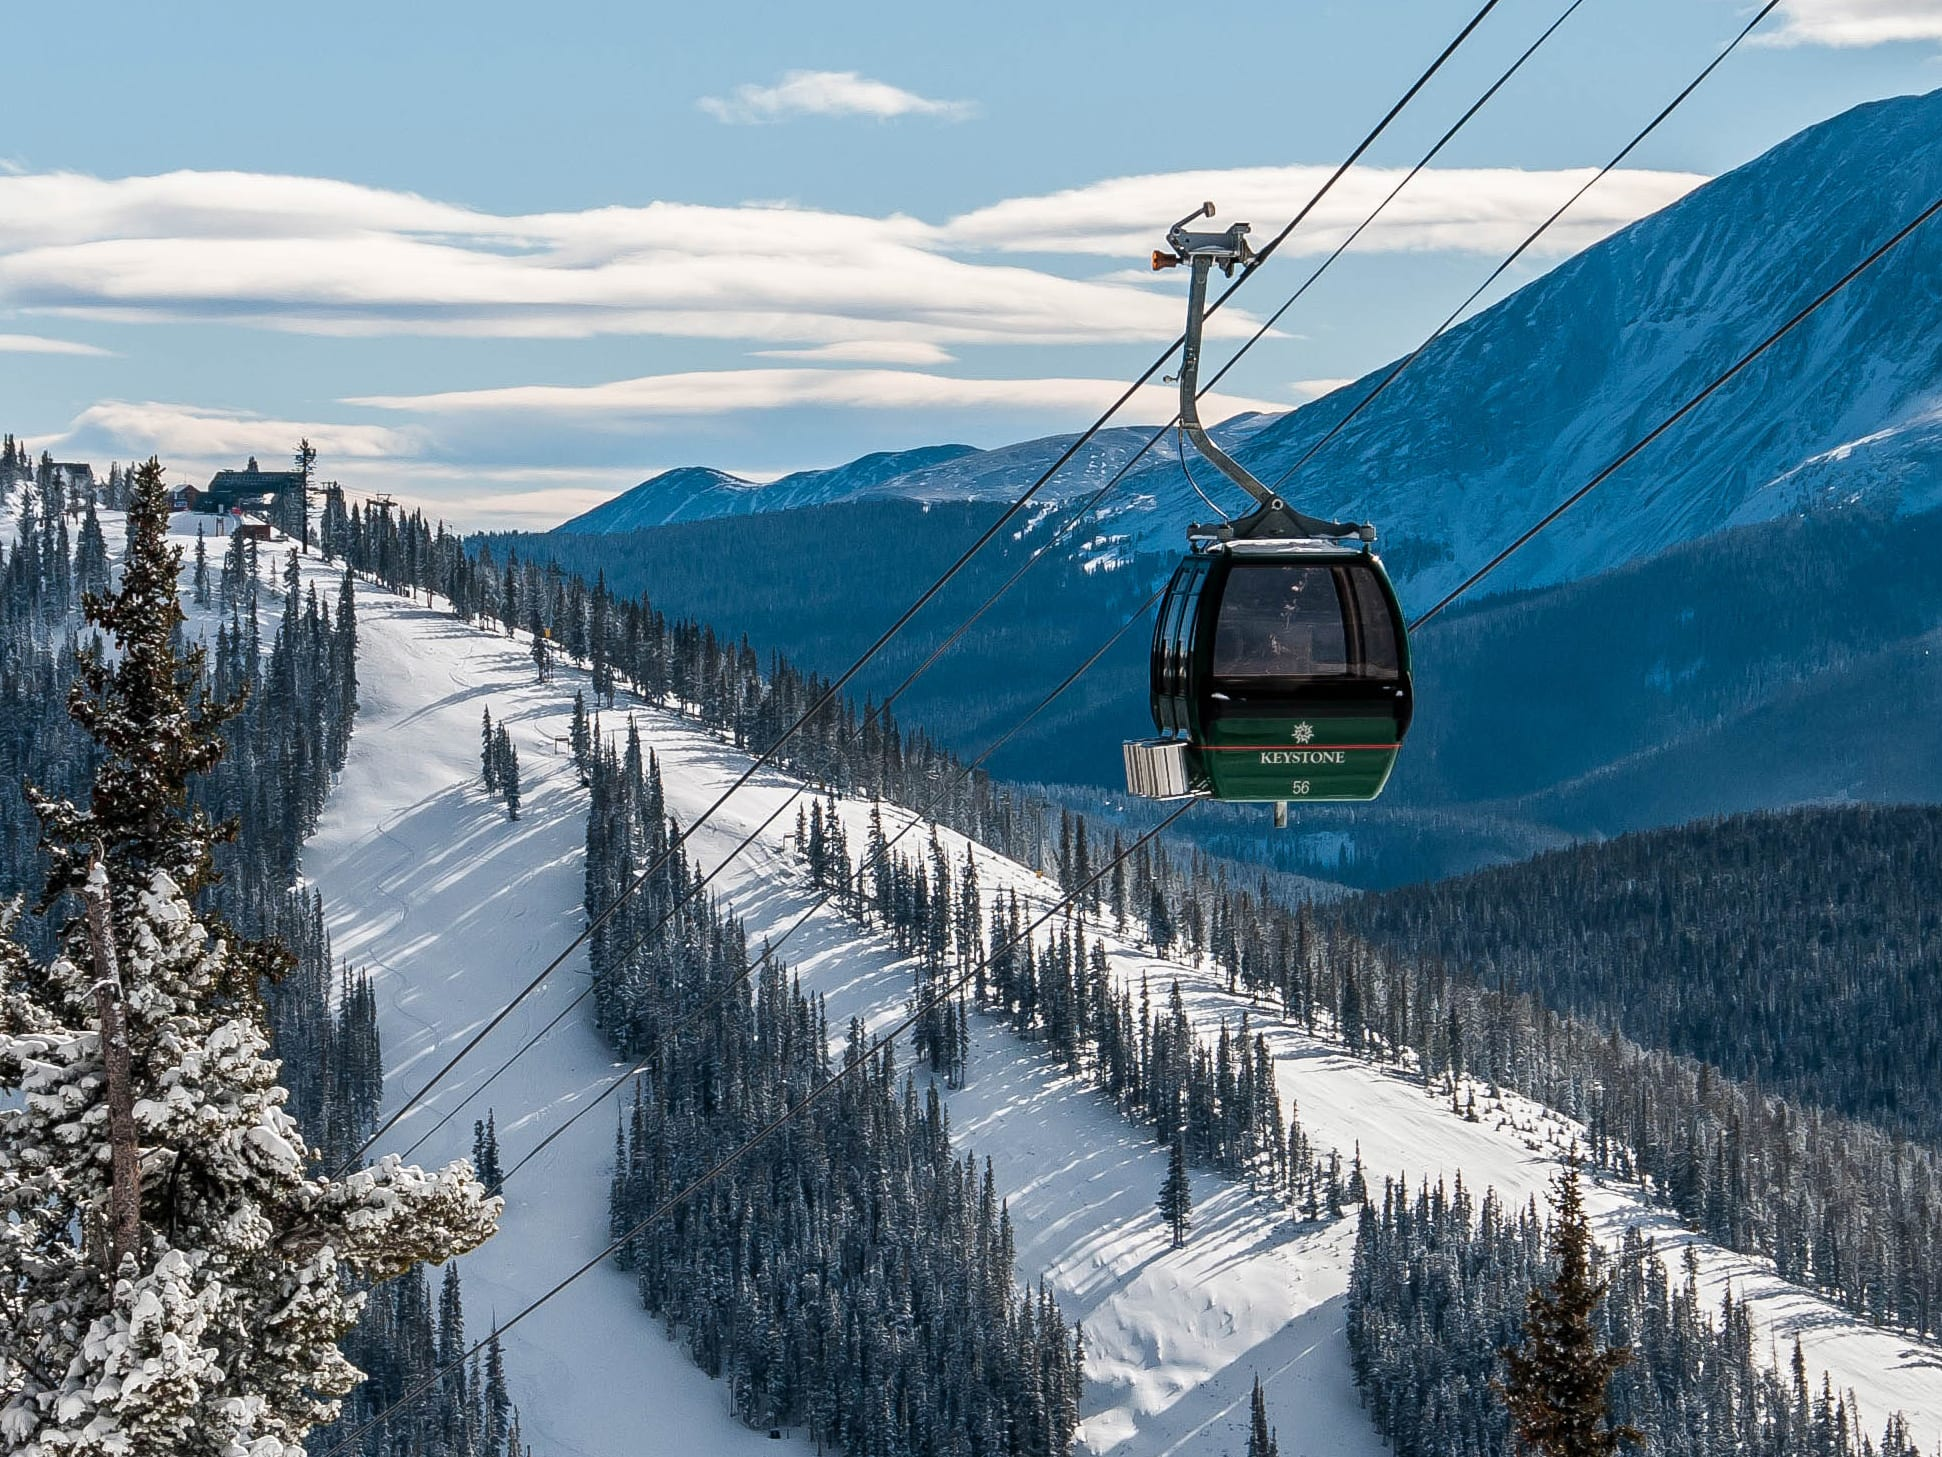 Christmas Village Ski Lift For Sale.Vacation Deals Keystone Ski Resort